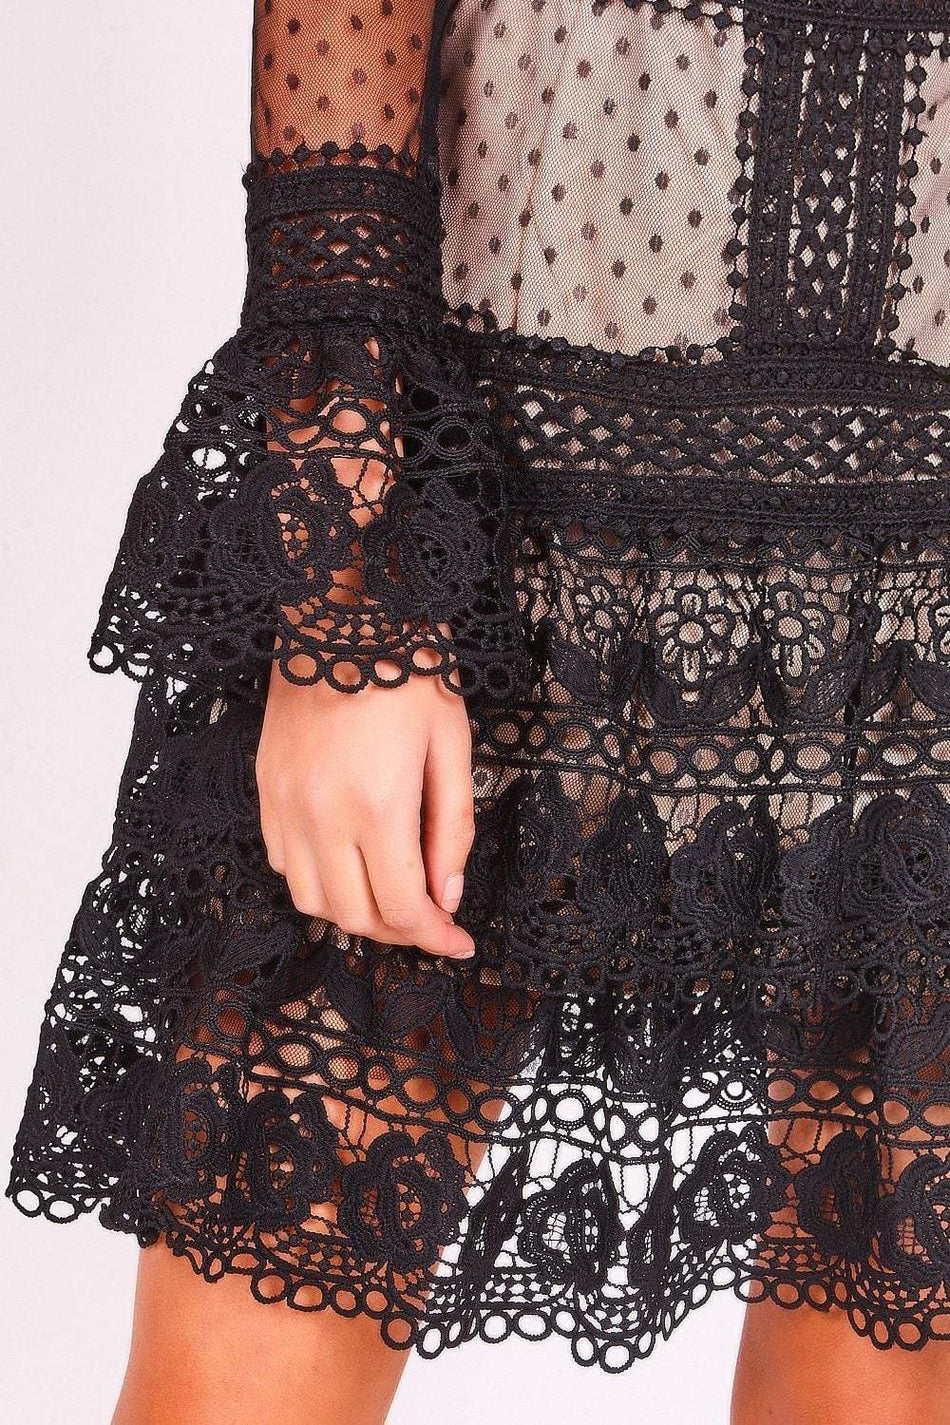 Black Sheer Lace Dress - KATCH ME